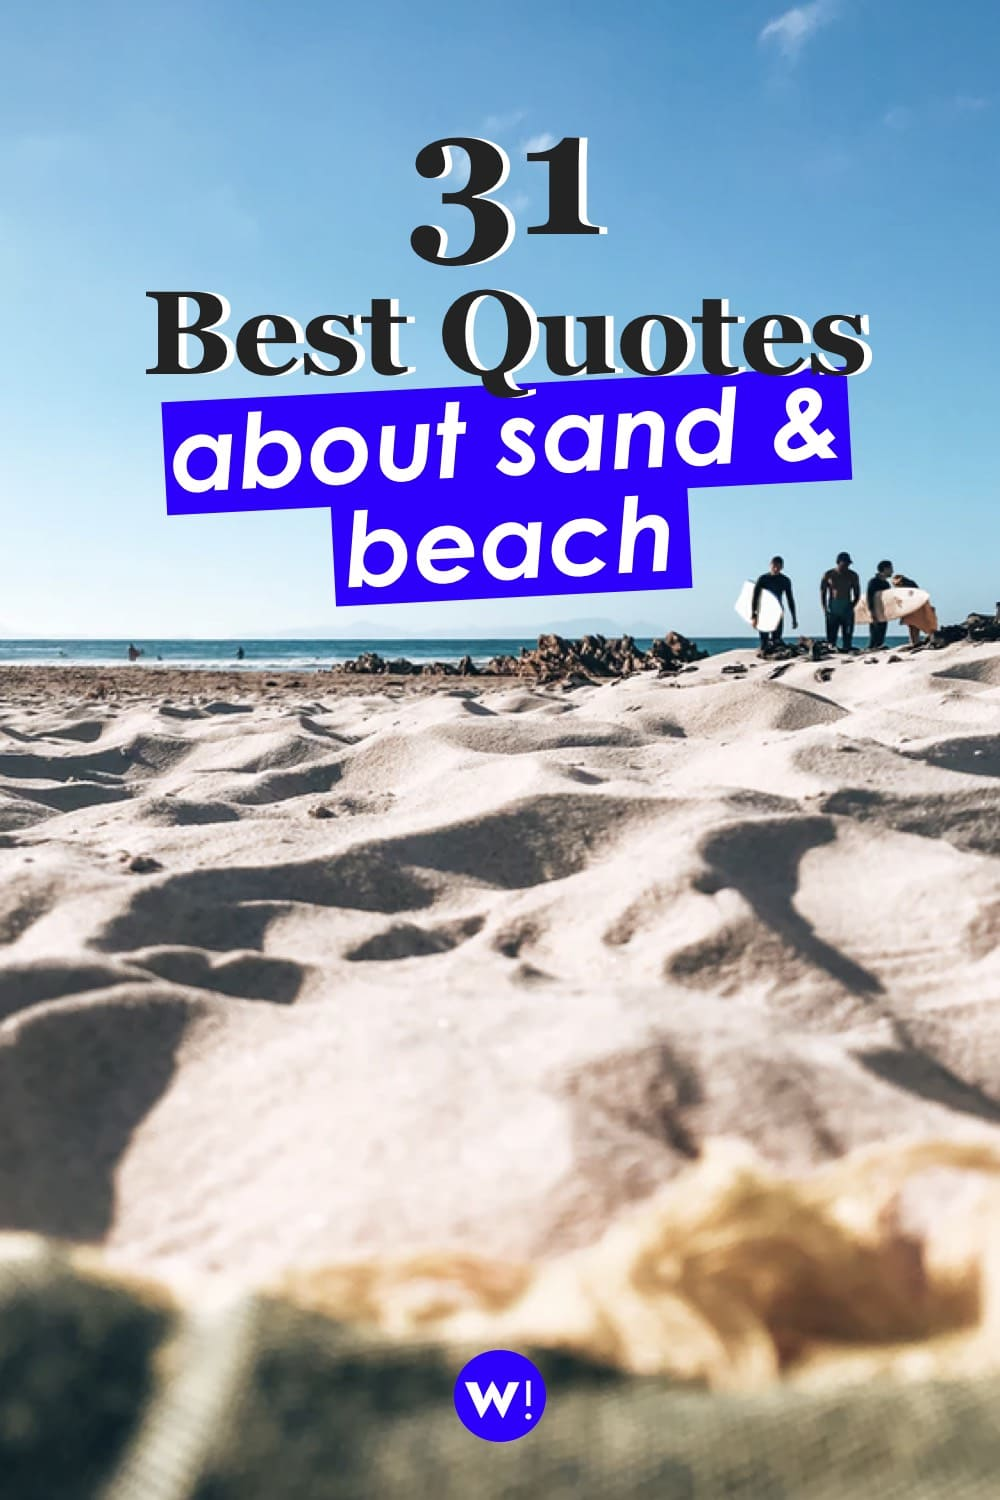 In love with sand beaches? Then you'll love these beach sand quotes! beach sand quotes and sayings|beach sand quotes instagram caption |beach sand quotes feelings |beach sand quotes words |toes in the sand quotes | sand quotes beach |sea sand quotes |beach quotes and sayings